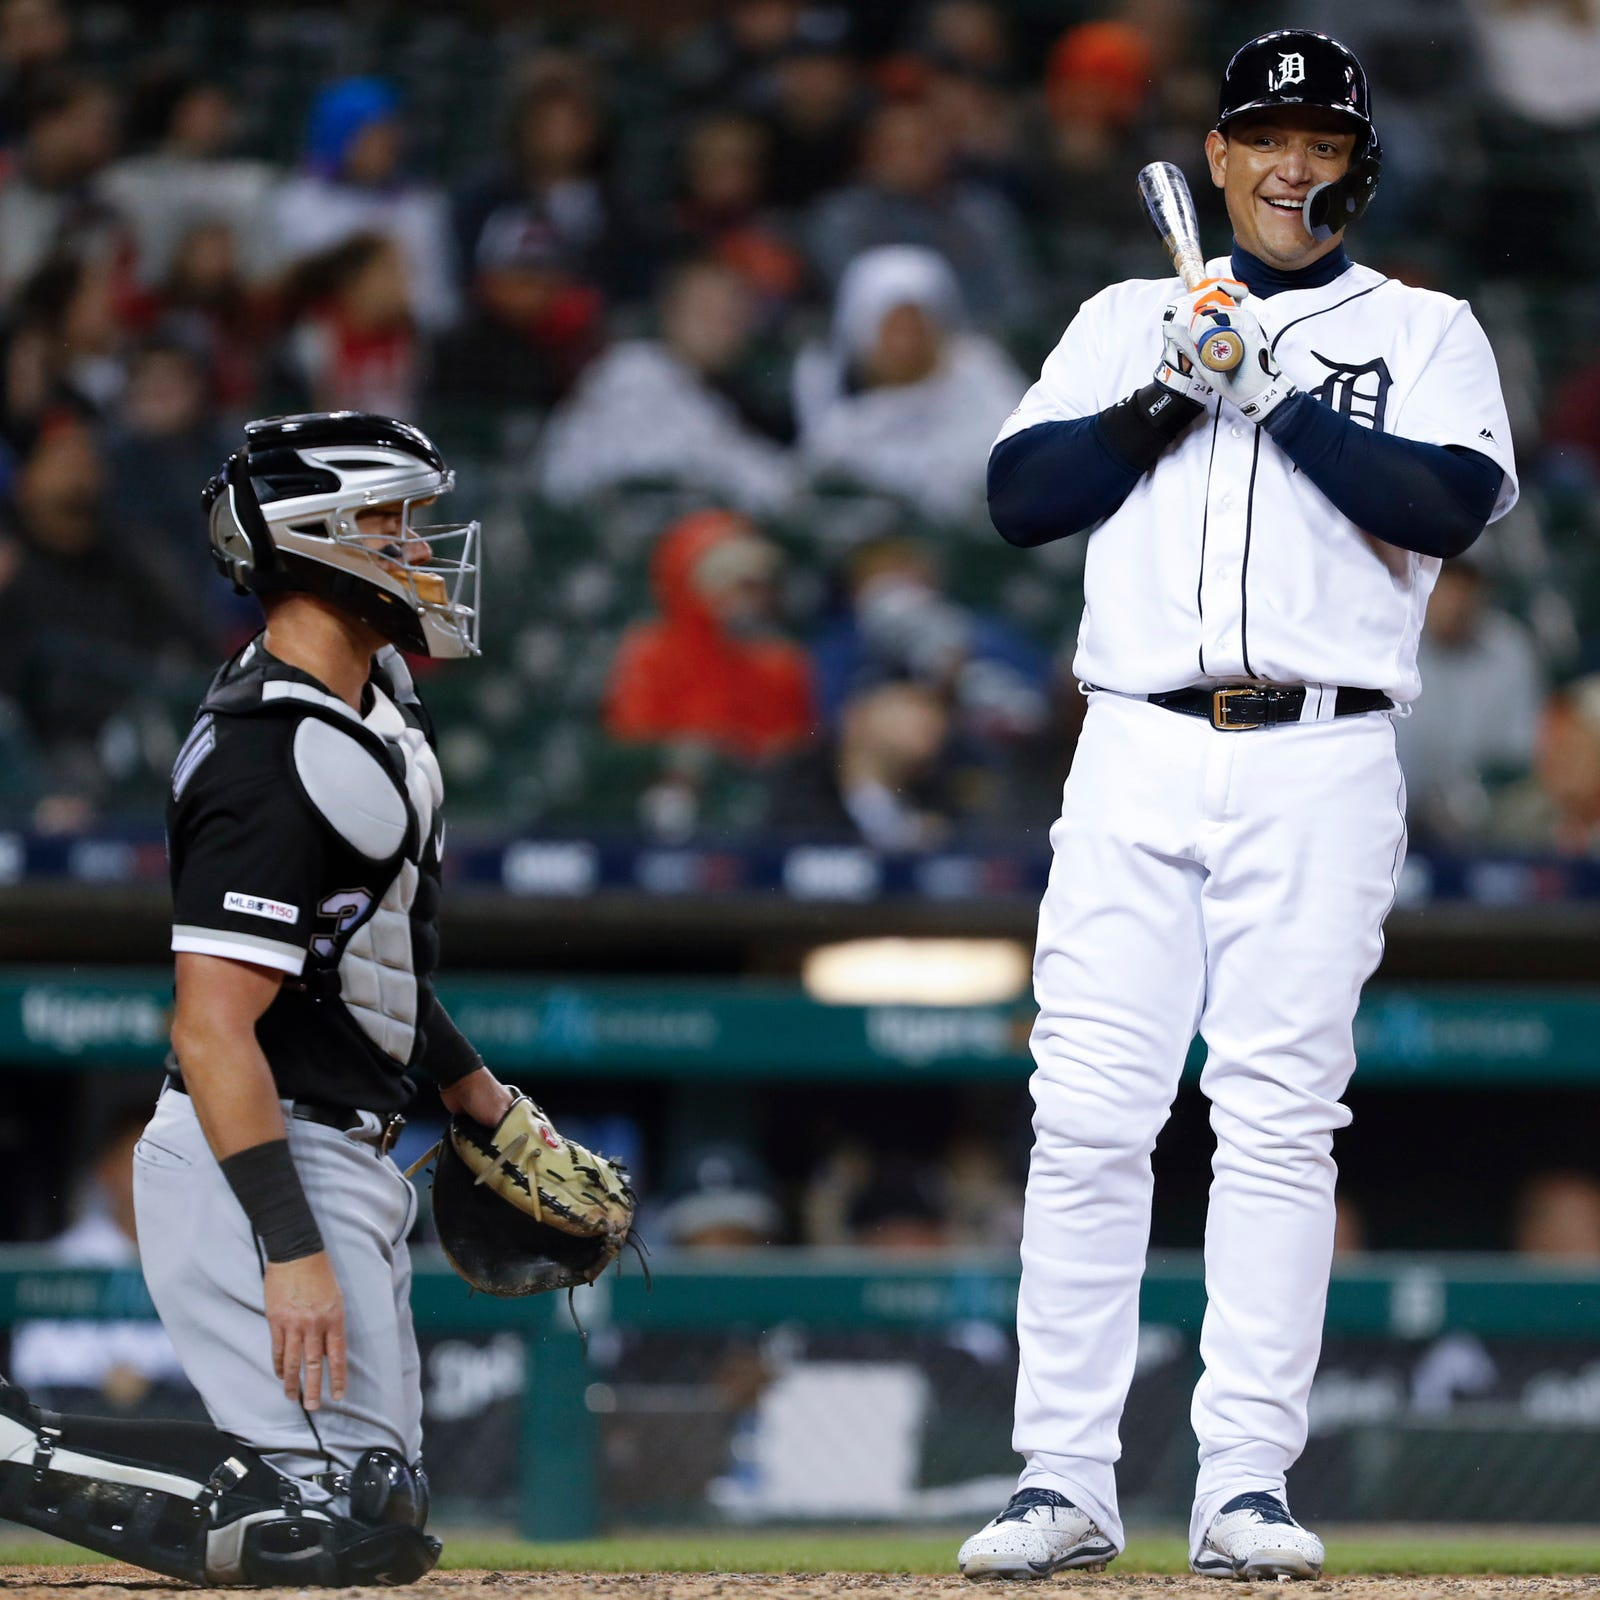 Ron Gardenhire: Miguel Cabrera's home run comments 'a little crazy'